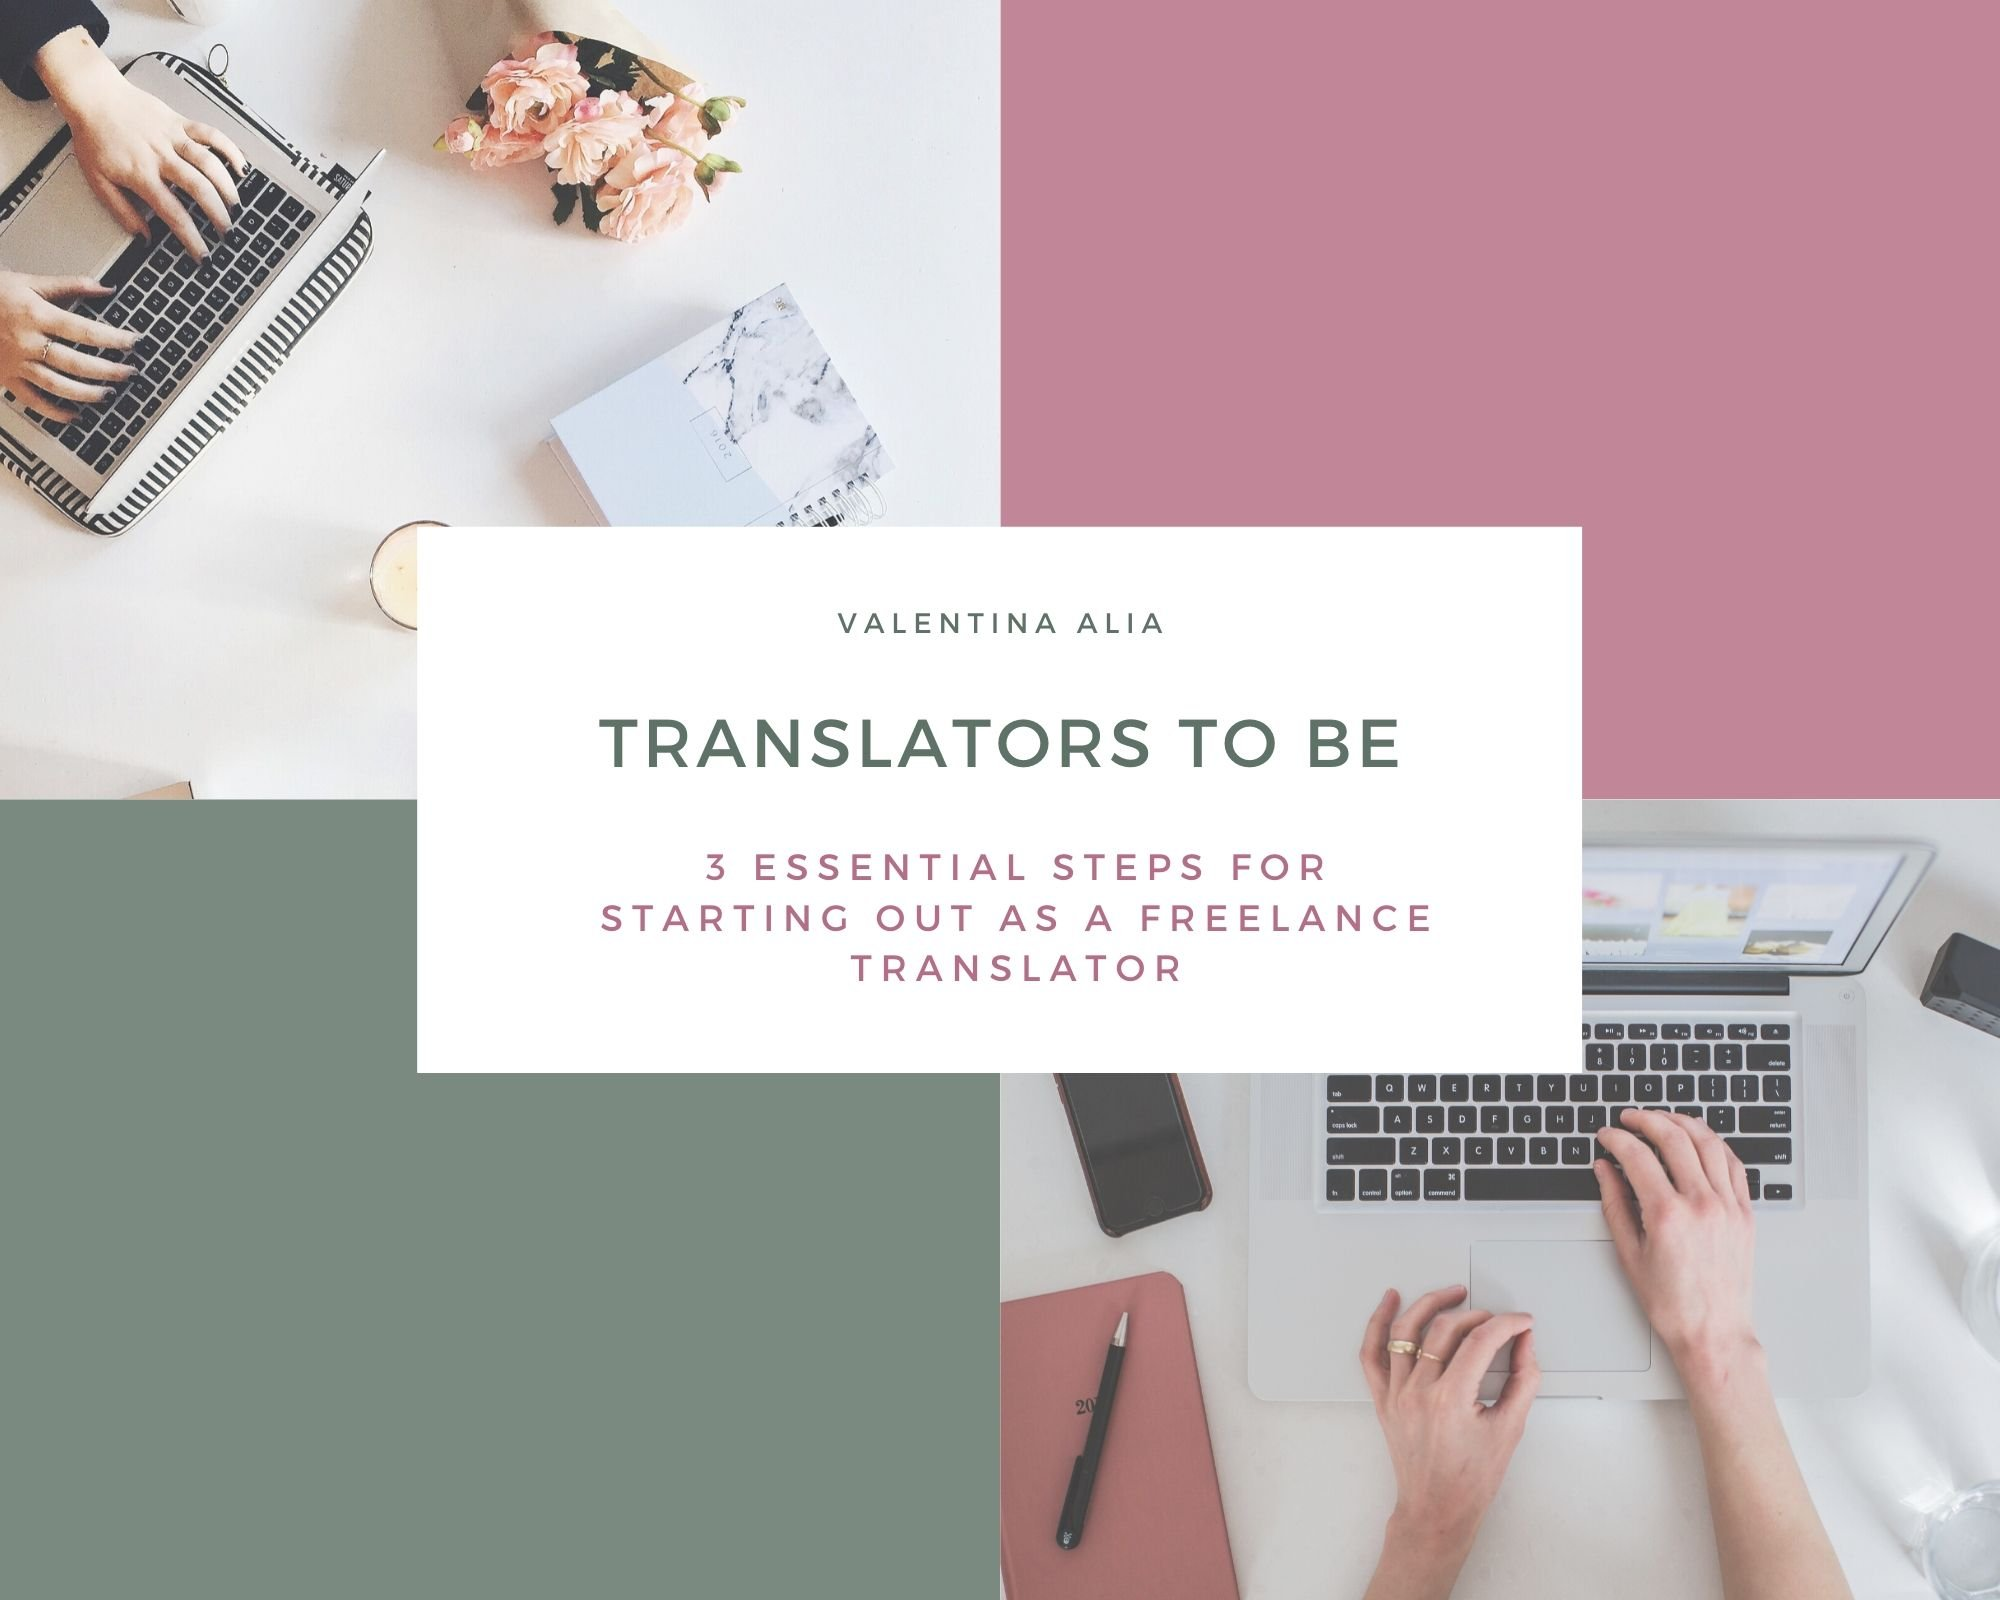 Translators to be